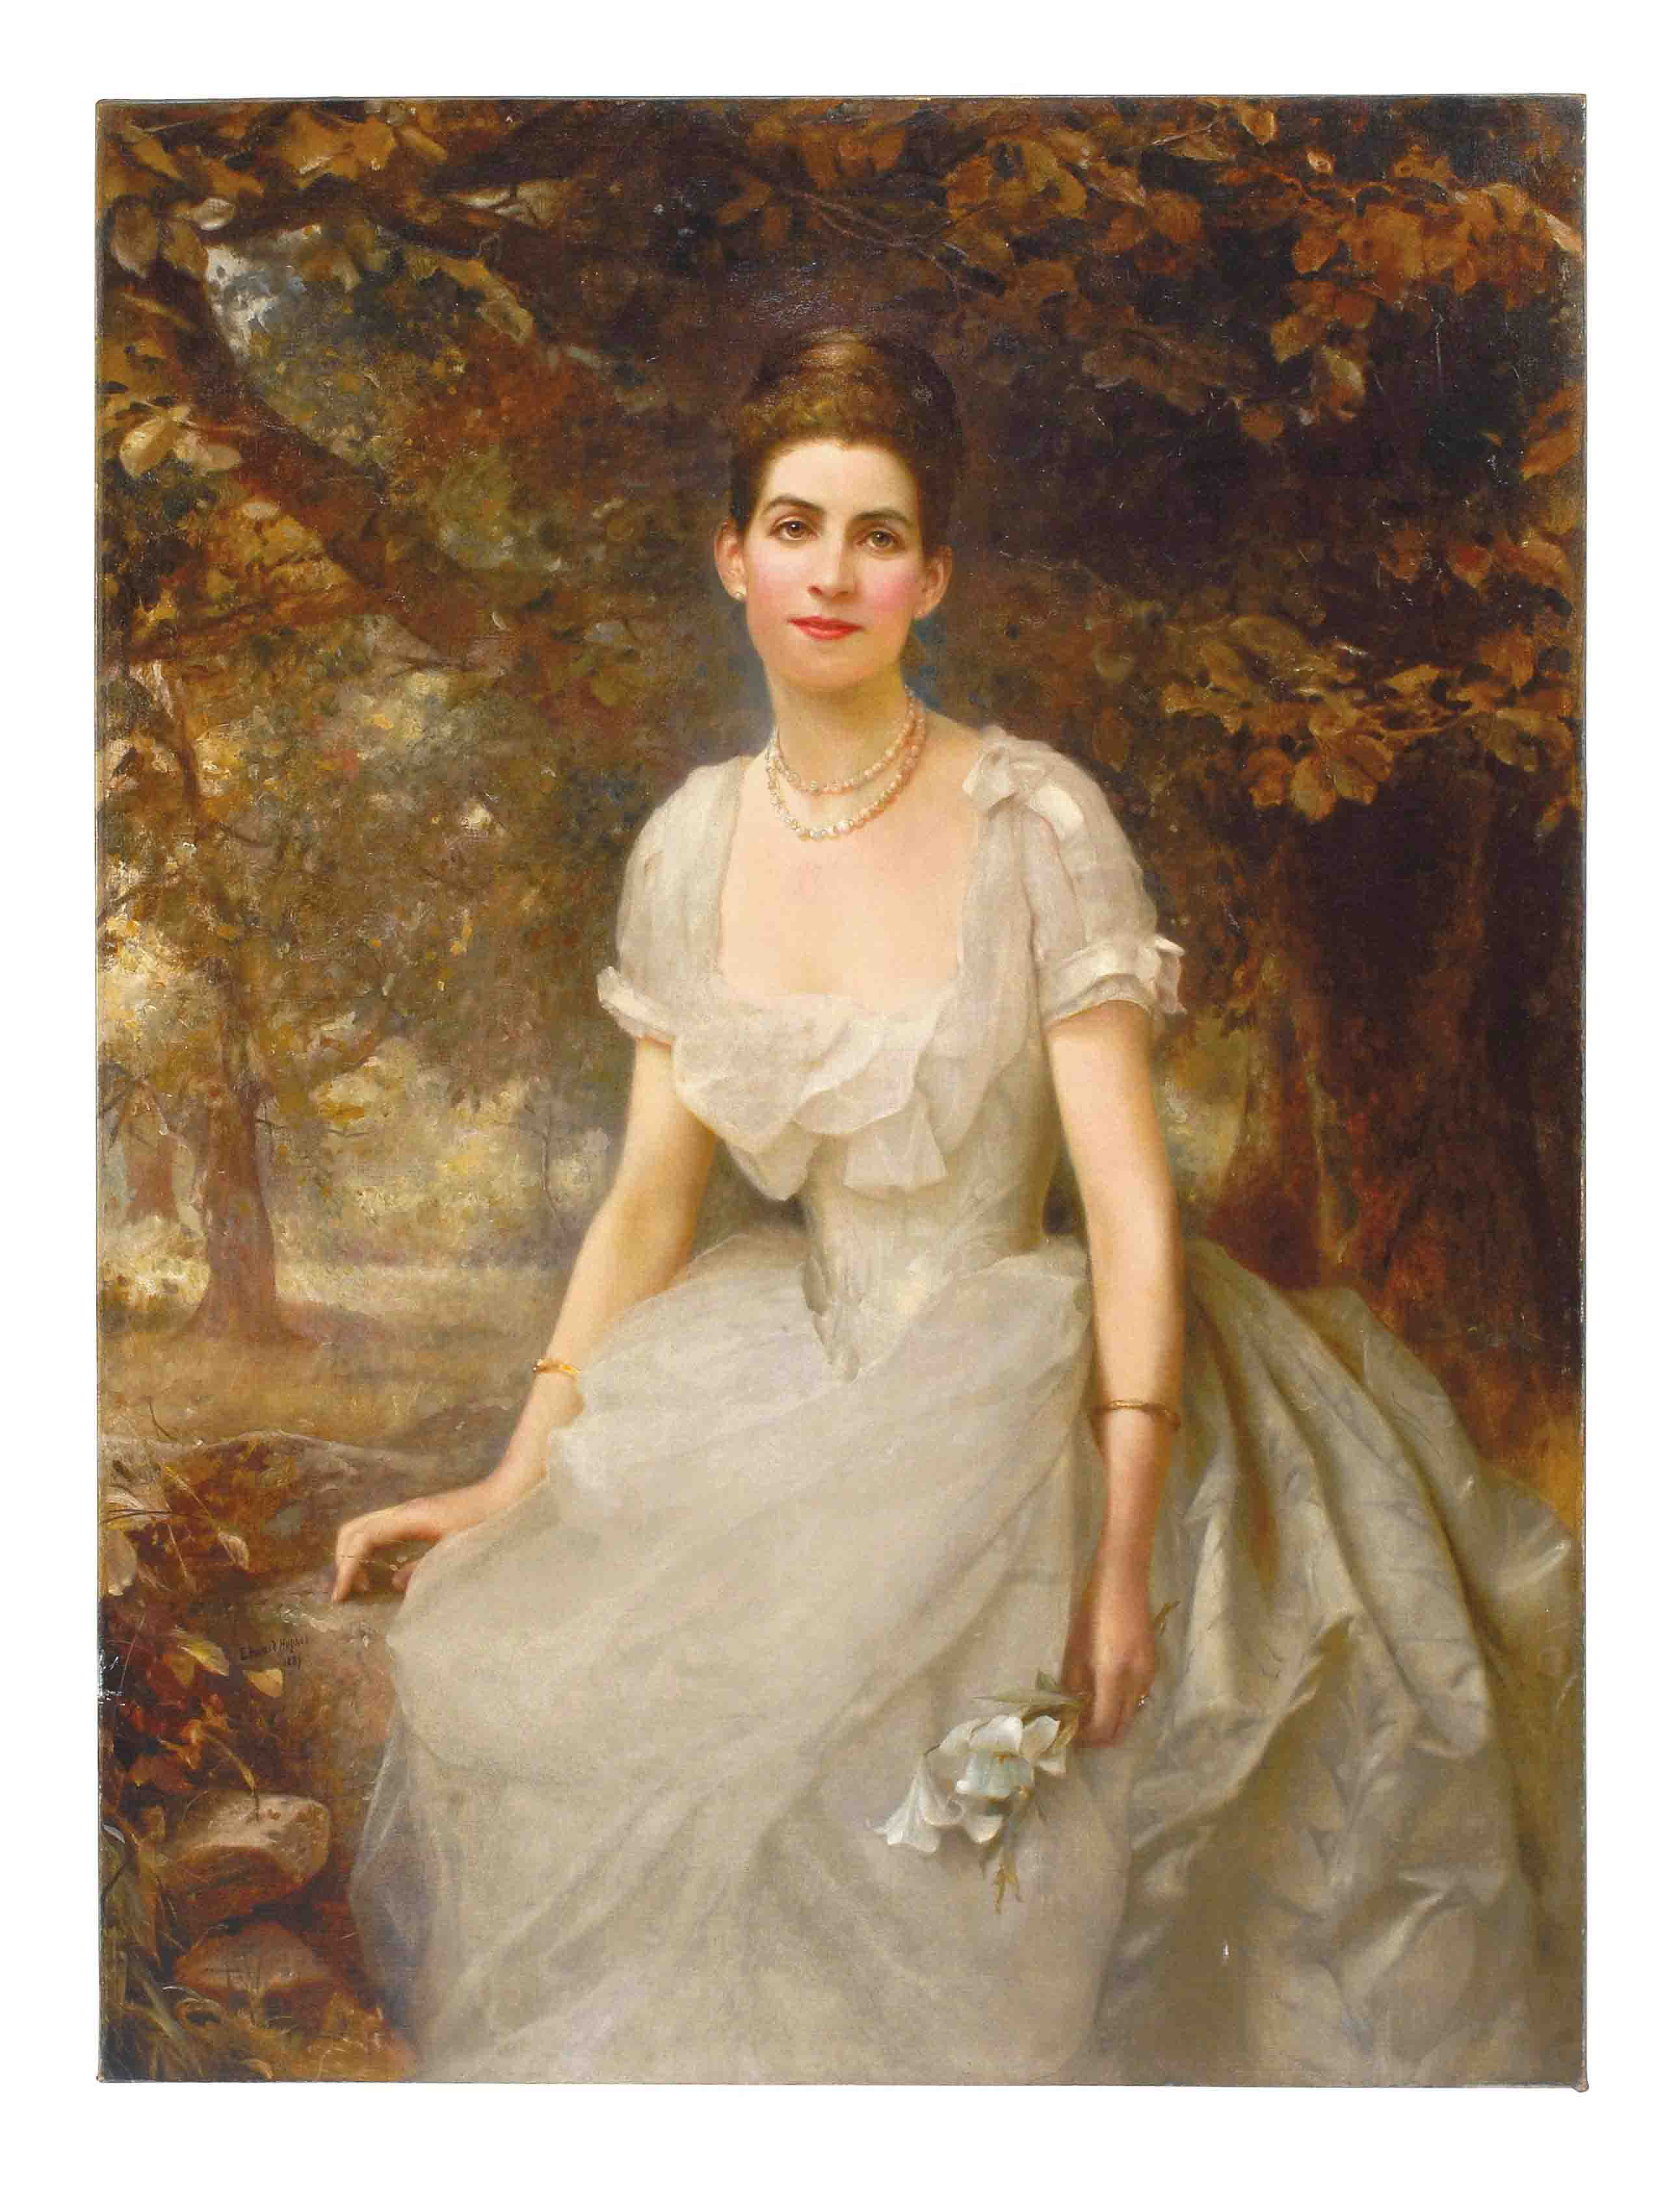 Portrait of Vere Monckton-Arundell, seated three-quarter-length, in a white evening dress holding lilies in a landscape